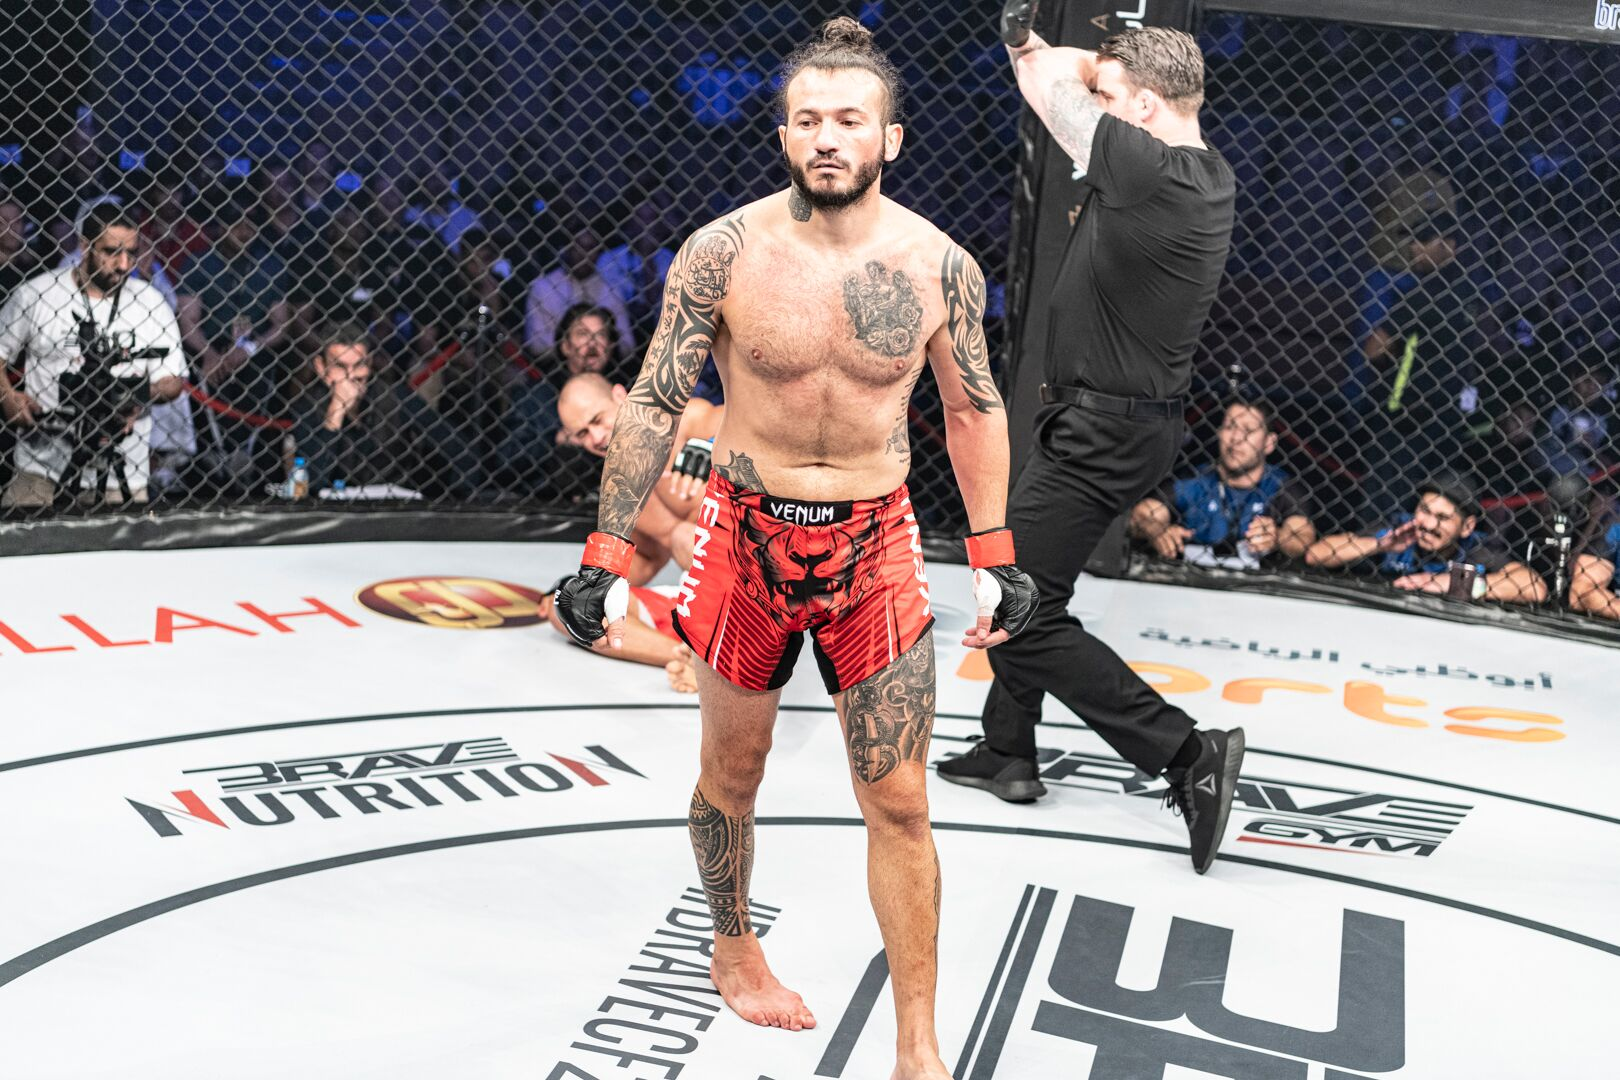 Fresh off devastating win, Fakhreddine wants in on KHK World Championship - BraveFC